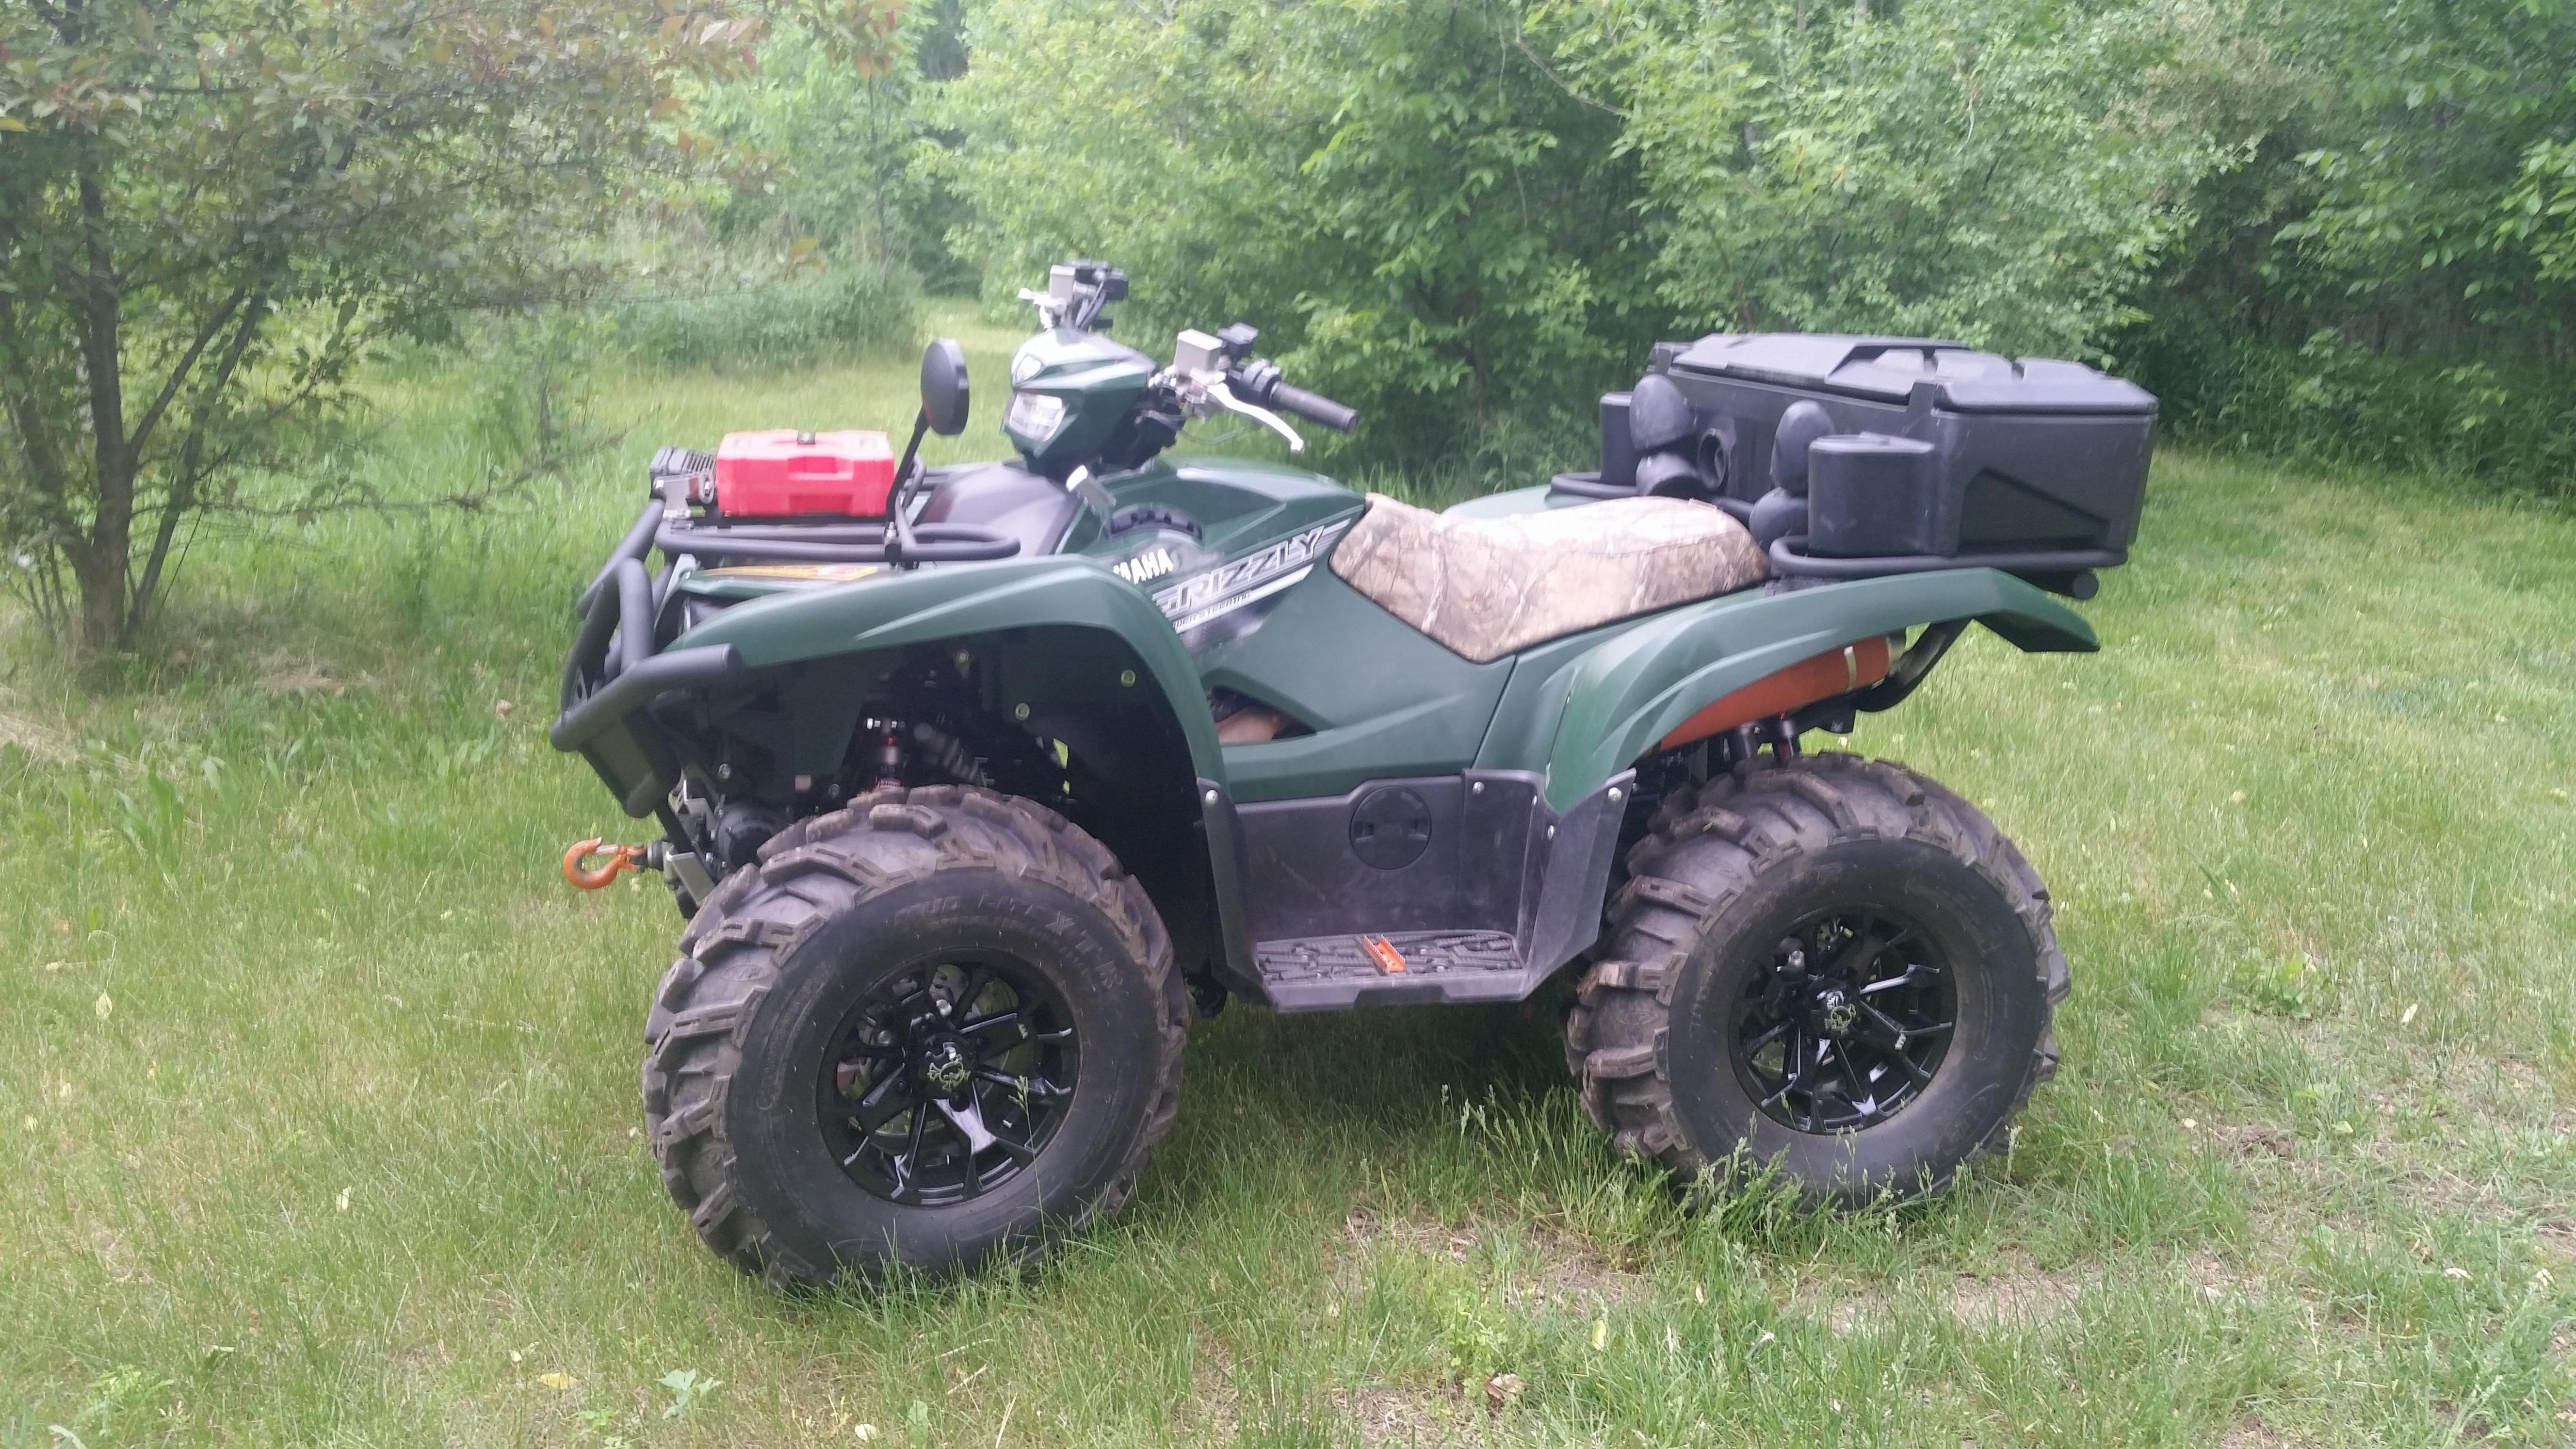 2016 Grizzly Pics And Mods Let S See Em Yamaha